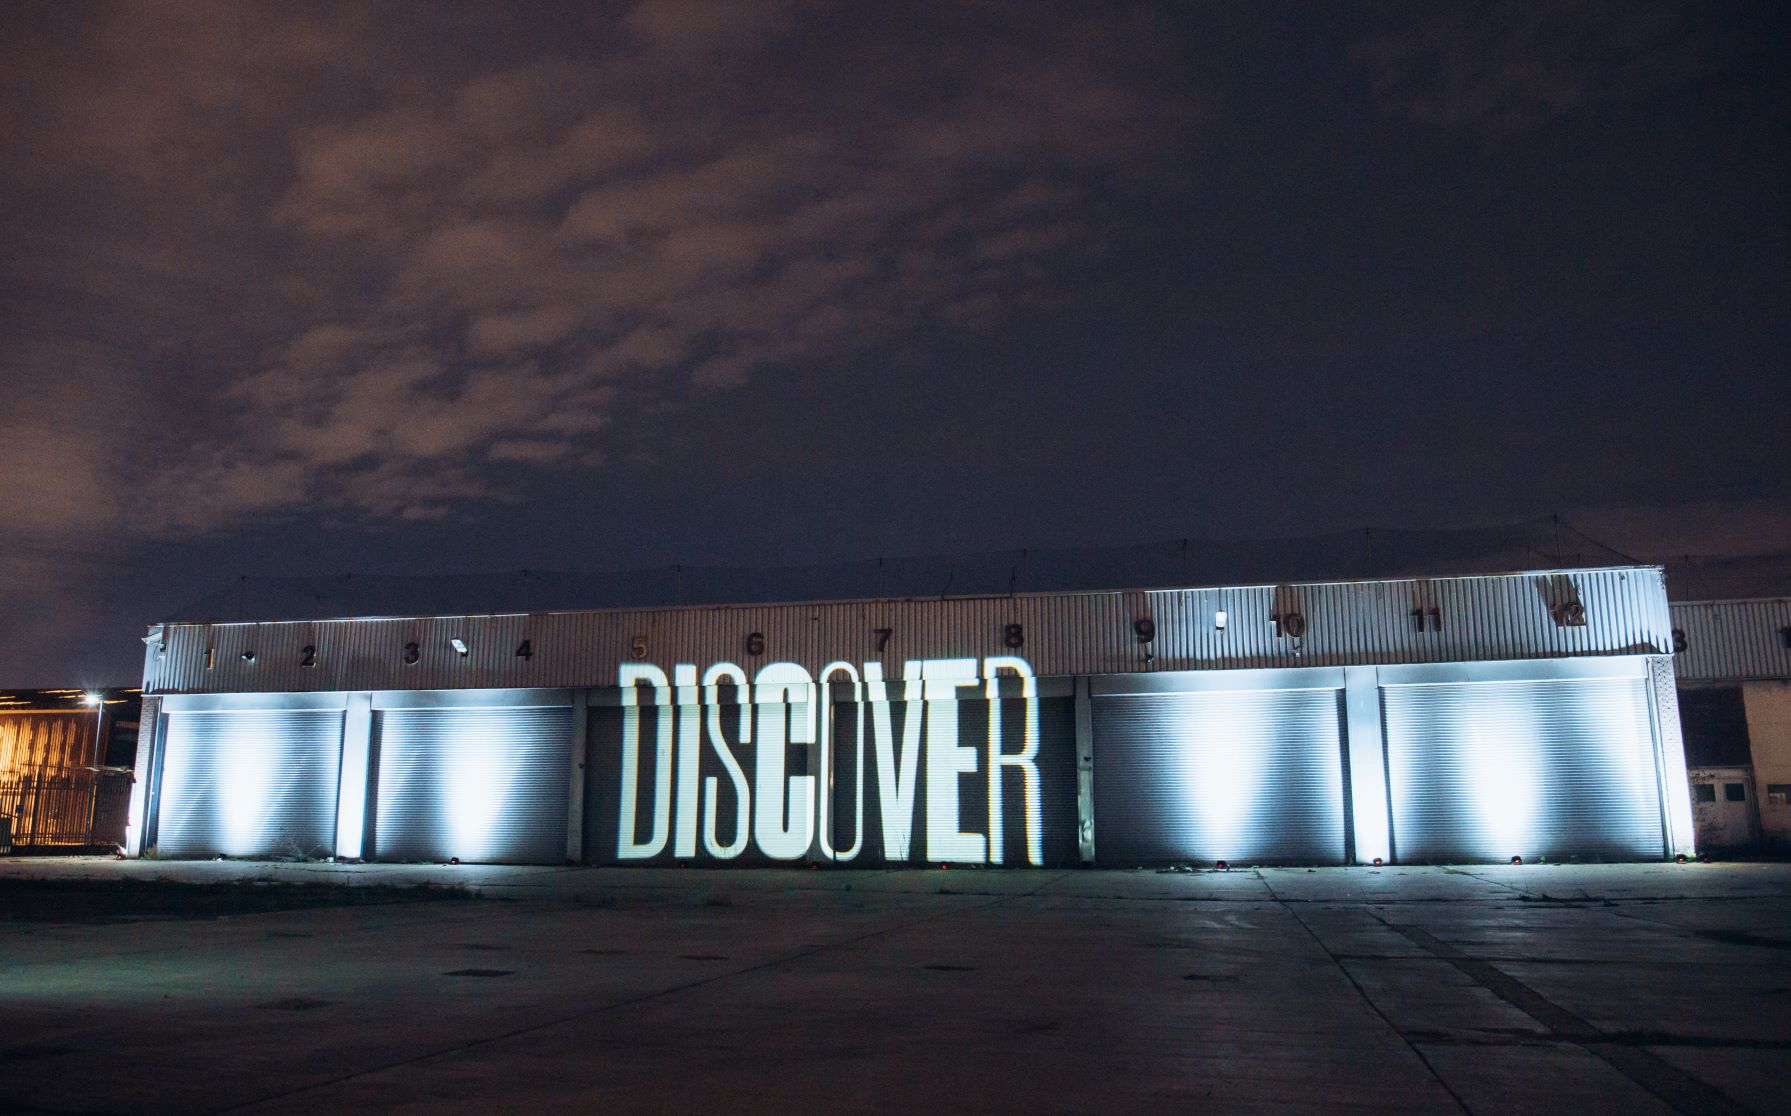 Discover illuminated on the front of The Northern Studios building